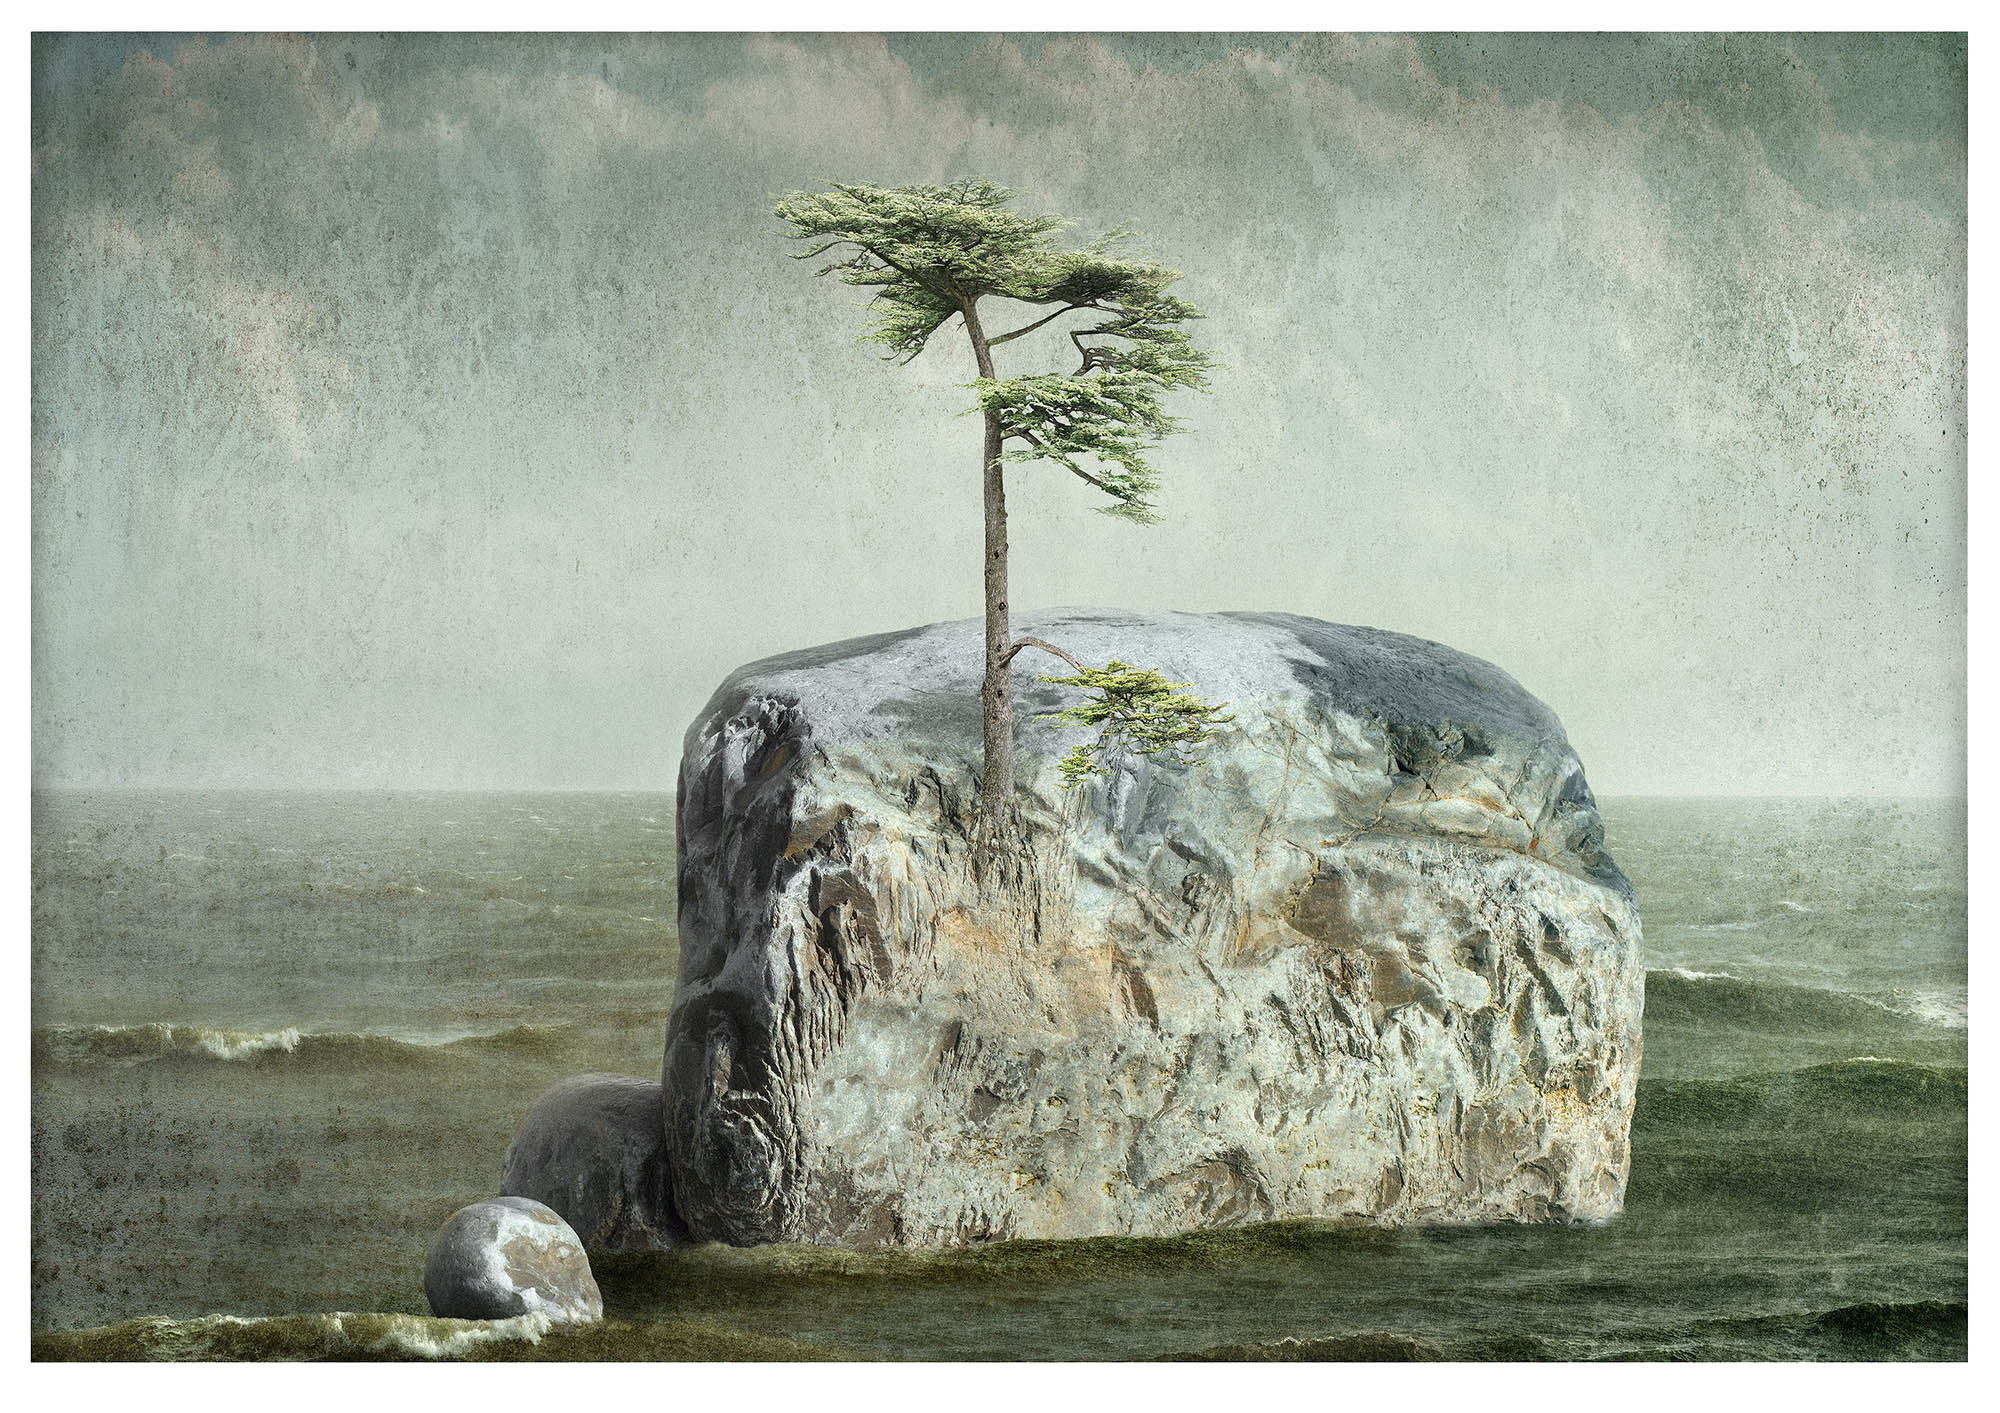 Monotoned illustrative fantasy composite photograph with one small islands with one pine tree in middle of a sea